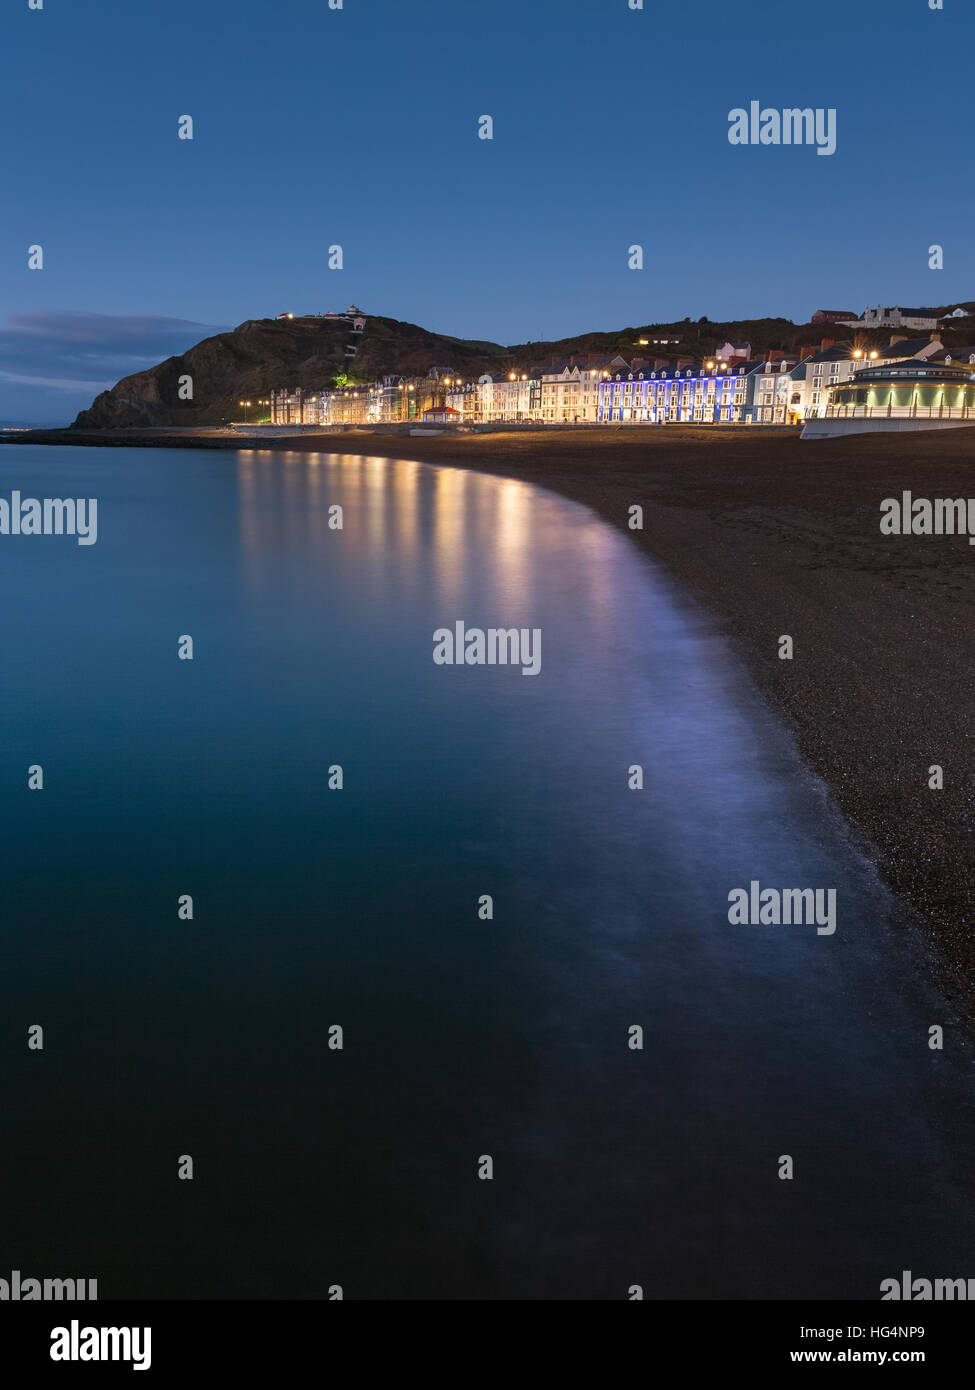 Aberystwyth promenade buildings in early evening, Ceredigion, Wales, UK - Stock Image